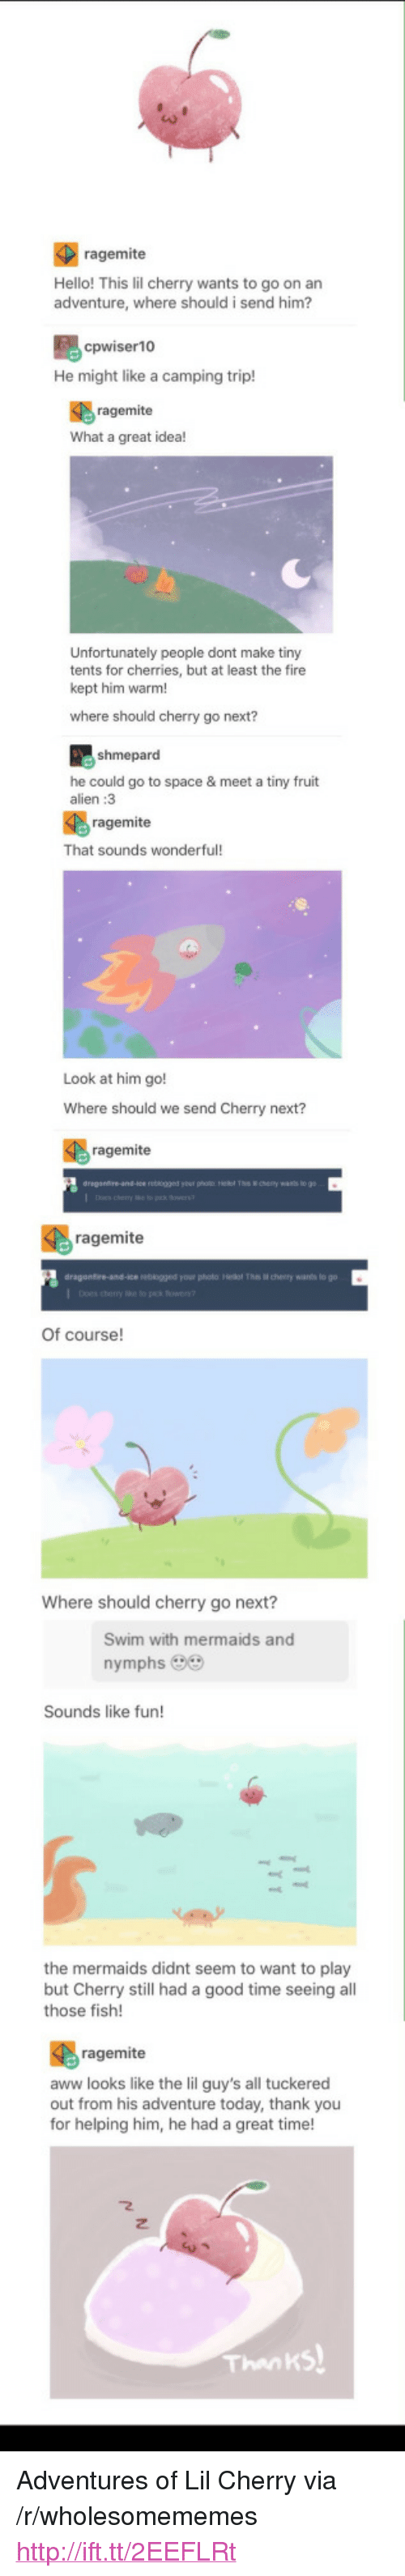 """Cherries: ragemite  Hello! This lil cherry wants to go on an  adventure, where should i send him?  cpwiser10  He might like a camping trip!  ragemite  What a great idea!  Unfortunately people dont make tiny  tents for cherries, but at least the fire  kept him warm!  where should cherry go next?  he could go to space & meet a tiny fruit  alien :3  ragemite  That sounds wonderful  Look at him go!  Where should we send Cherry next?  ragemite  ragemite  eblogged your photo l The i cherry warts to go  Of course!  Where should cherry go next?  Swim with mermaids and  nymphs 9  Sounds like fun!  the mermaids didnt seem to want to play  but Cherry still had a good time seeing al  those fish!  ragemite  aww looks like the lil guy's all tuckered  out from his adventure today, thank you  for helping him, he had a great time!  Thanks <p>Adventures of Lil Cherry via /r/wholesomememes <a href=""""http://ift.tt/2EEFLRt"""">http://ift.tt/2EEFLRt</a></p>"""